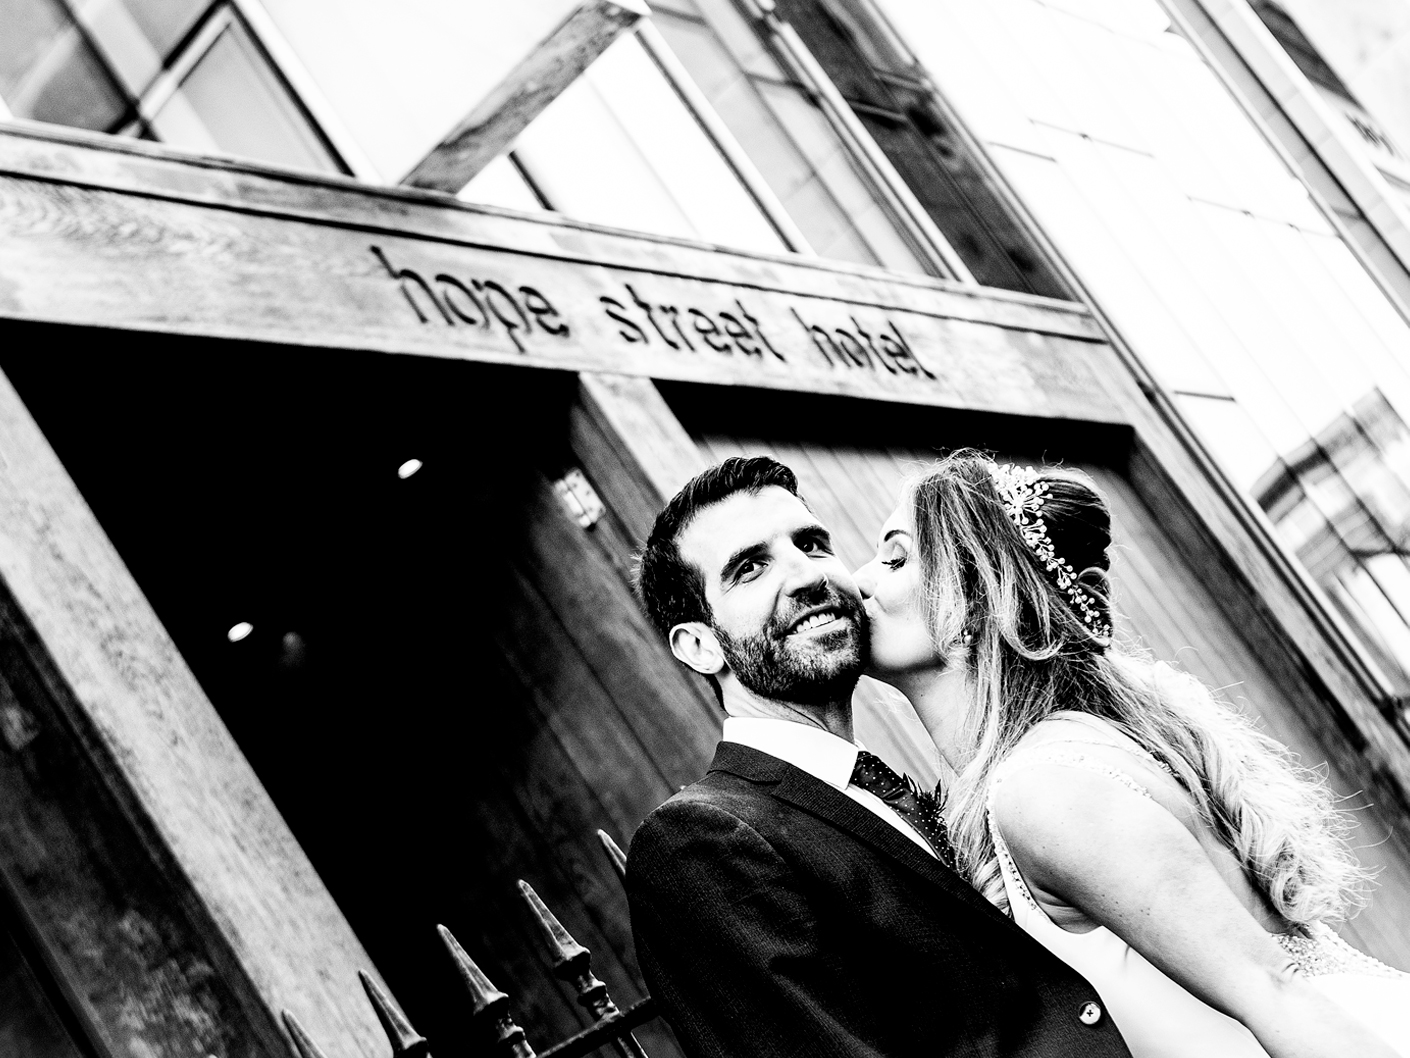 the-bride-and-groom-in-front-of-the-hope-street-hotel-liverpool